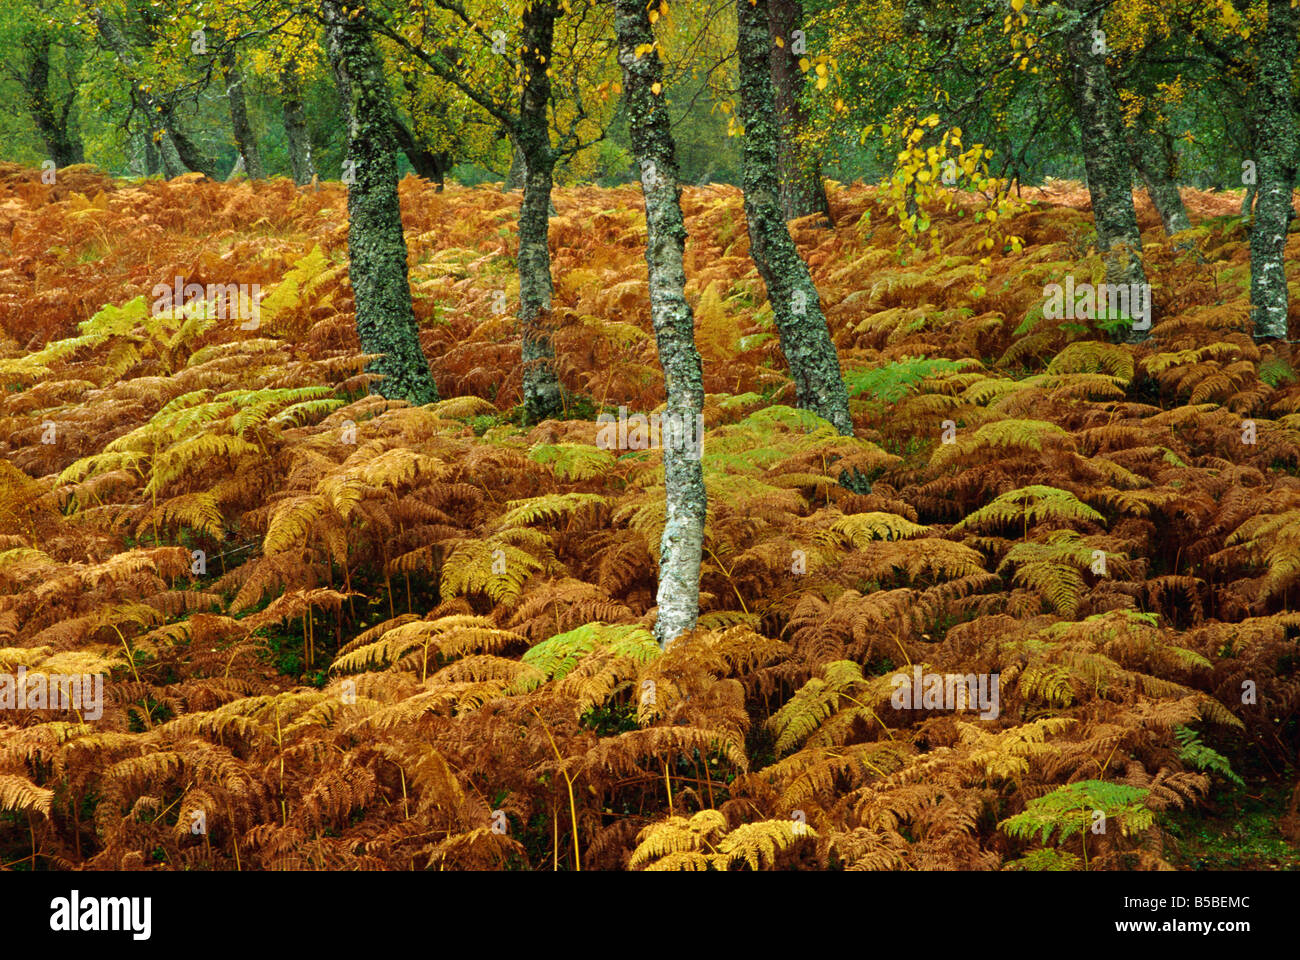 Birch trees and bracken in autumn, Glen Strathfarrar, Highlands, Scotland, Europe - Stock Image